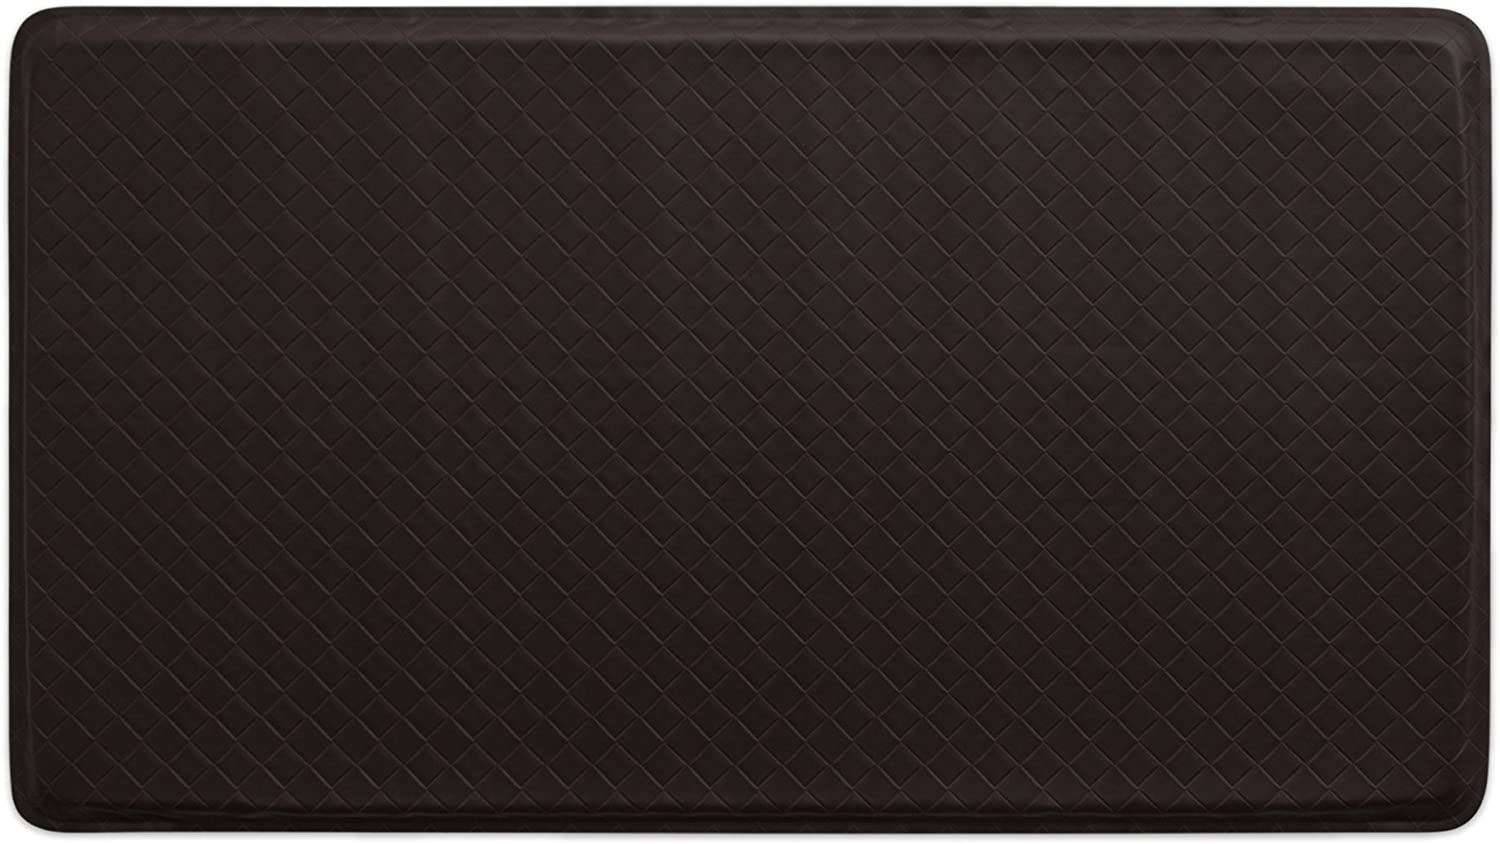 Amazon Com Gelpro Classic Anti Fatigue Kitchen Comfort Chef Floor Mat 20x36 Basketweave Truffle Stain Resistant Surface With 1 2 Gel Core For Health And Wellness Kitchen Dining